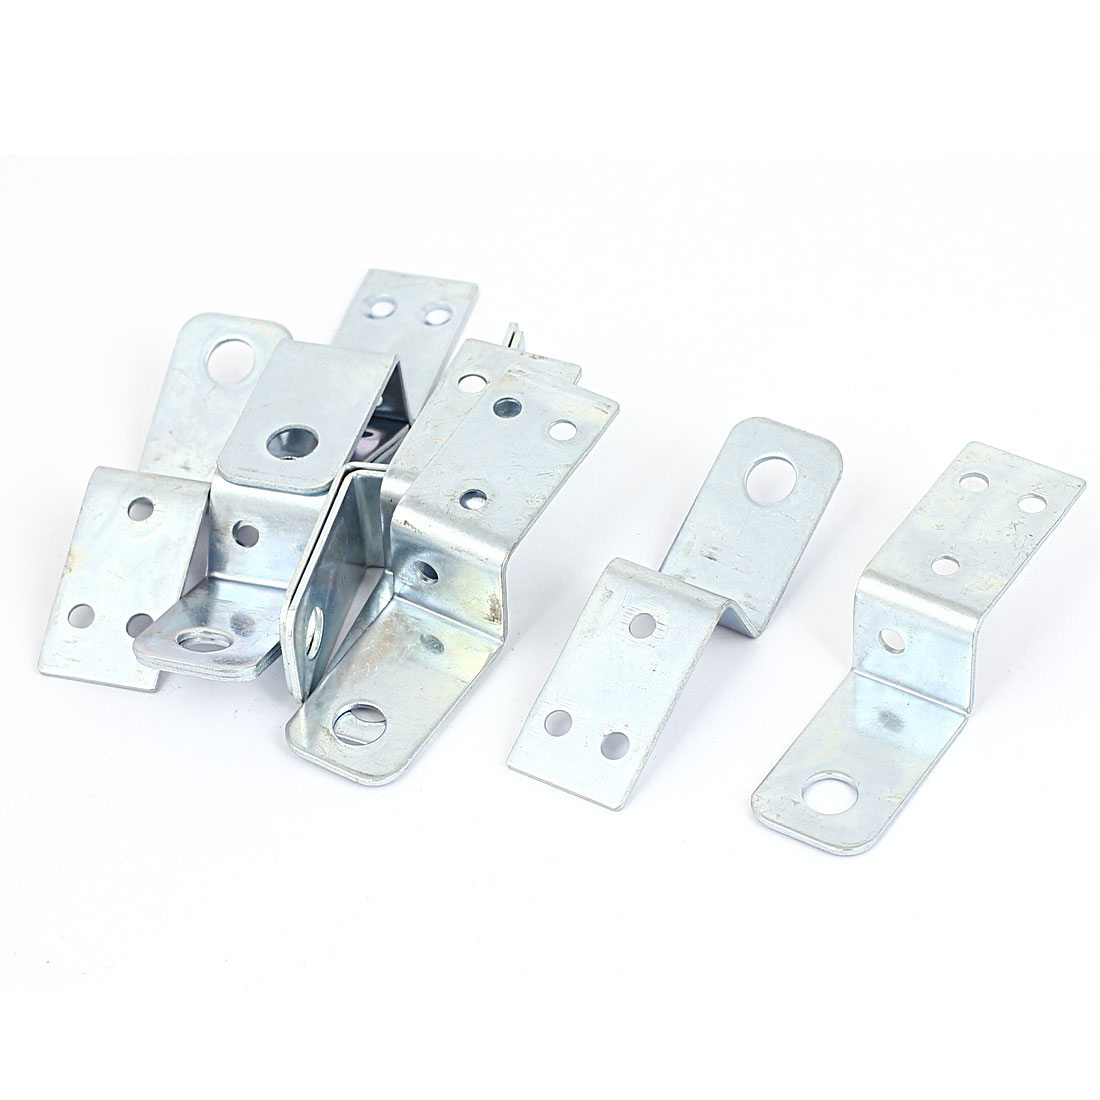 Furniture Shelf 70mmx20mm Z Shaped Corner Brace Plate Right Angle Bracket 10pcs